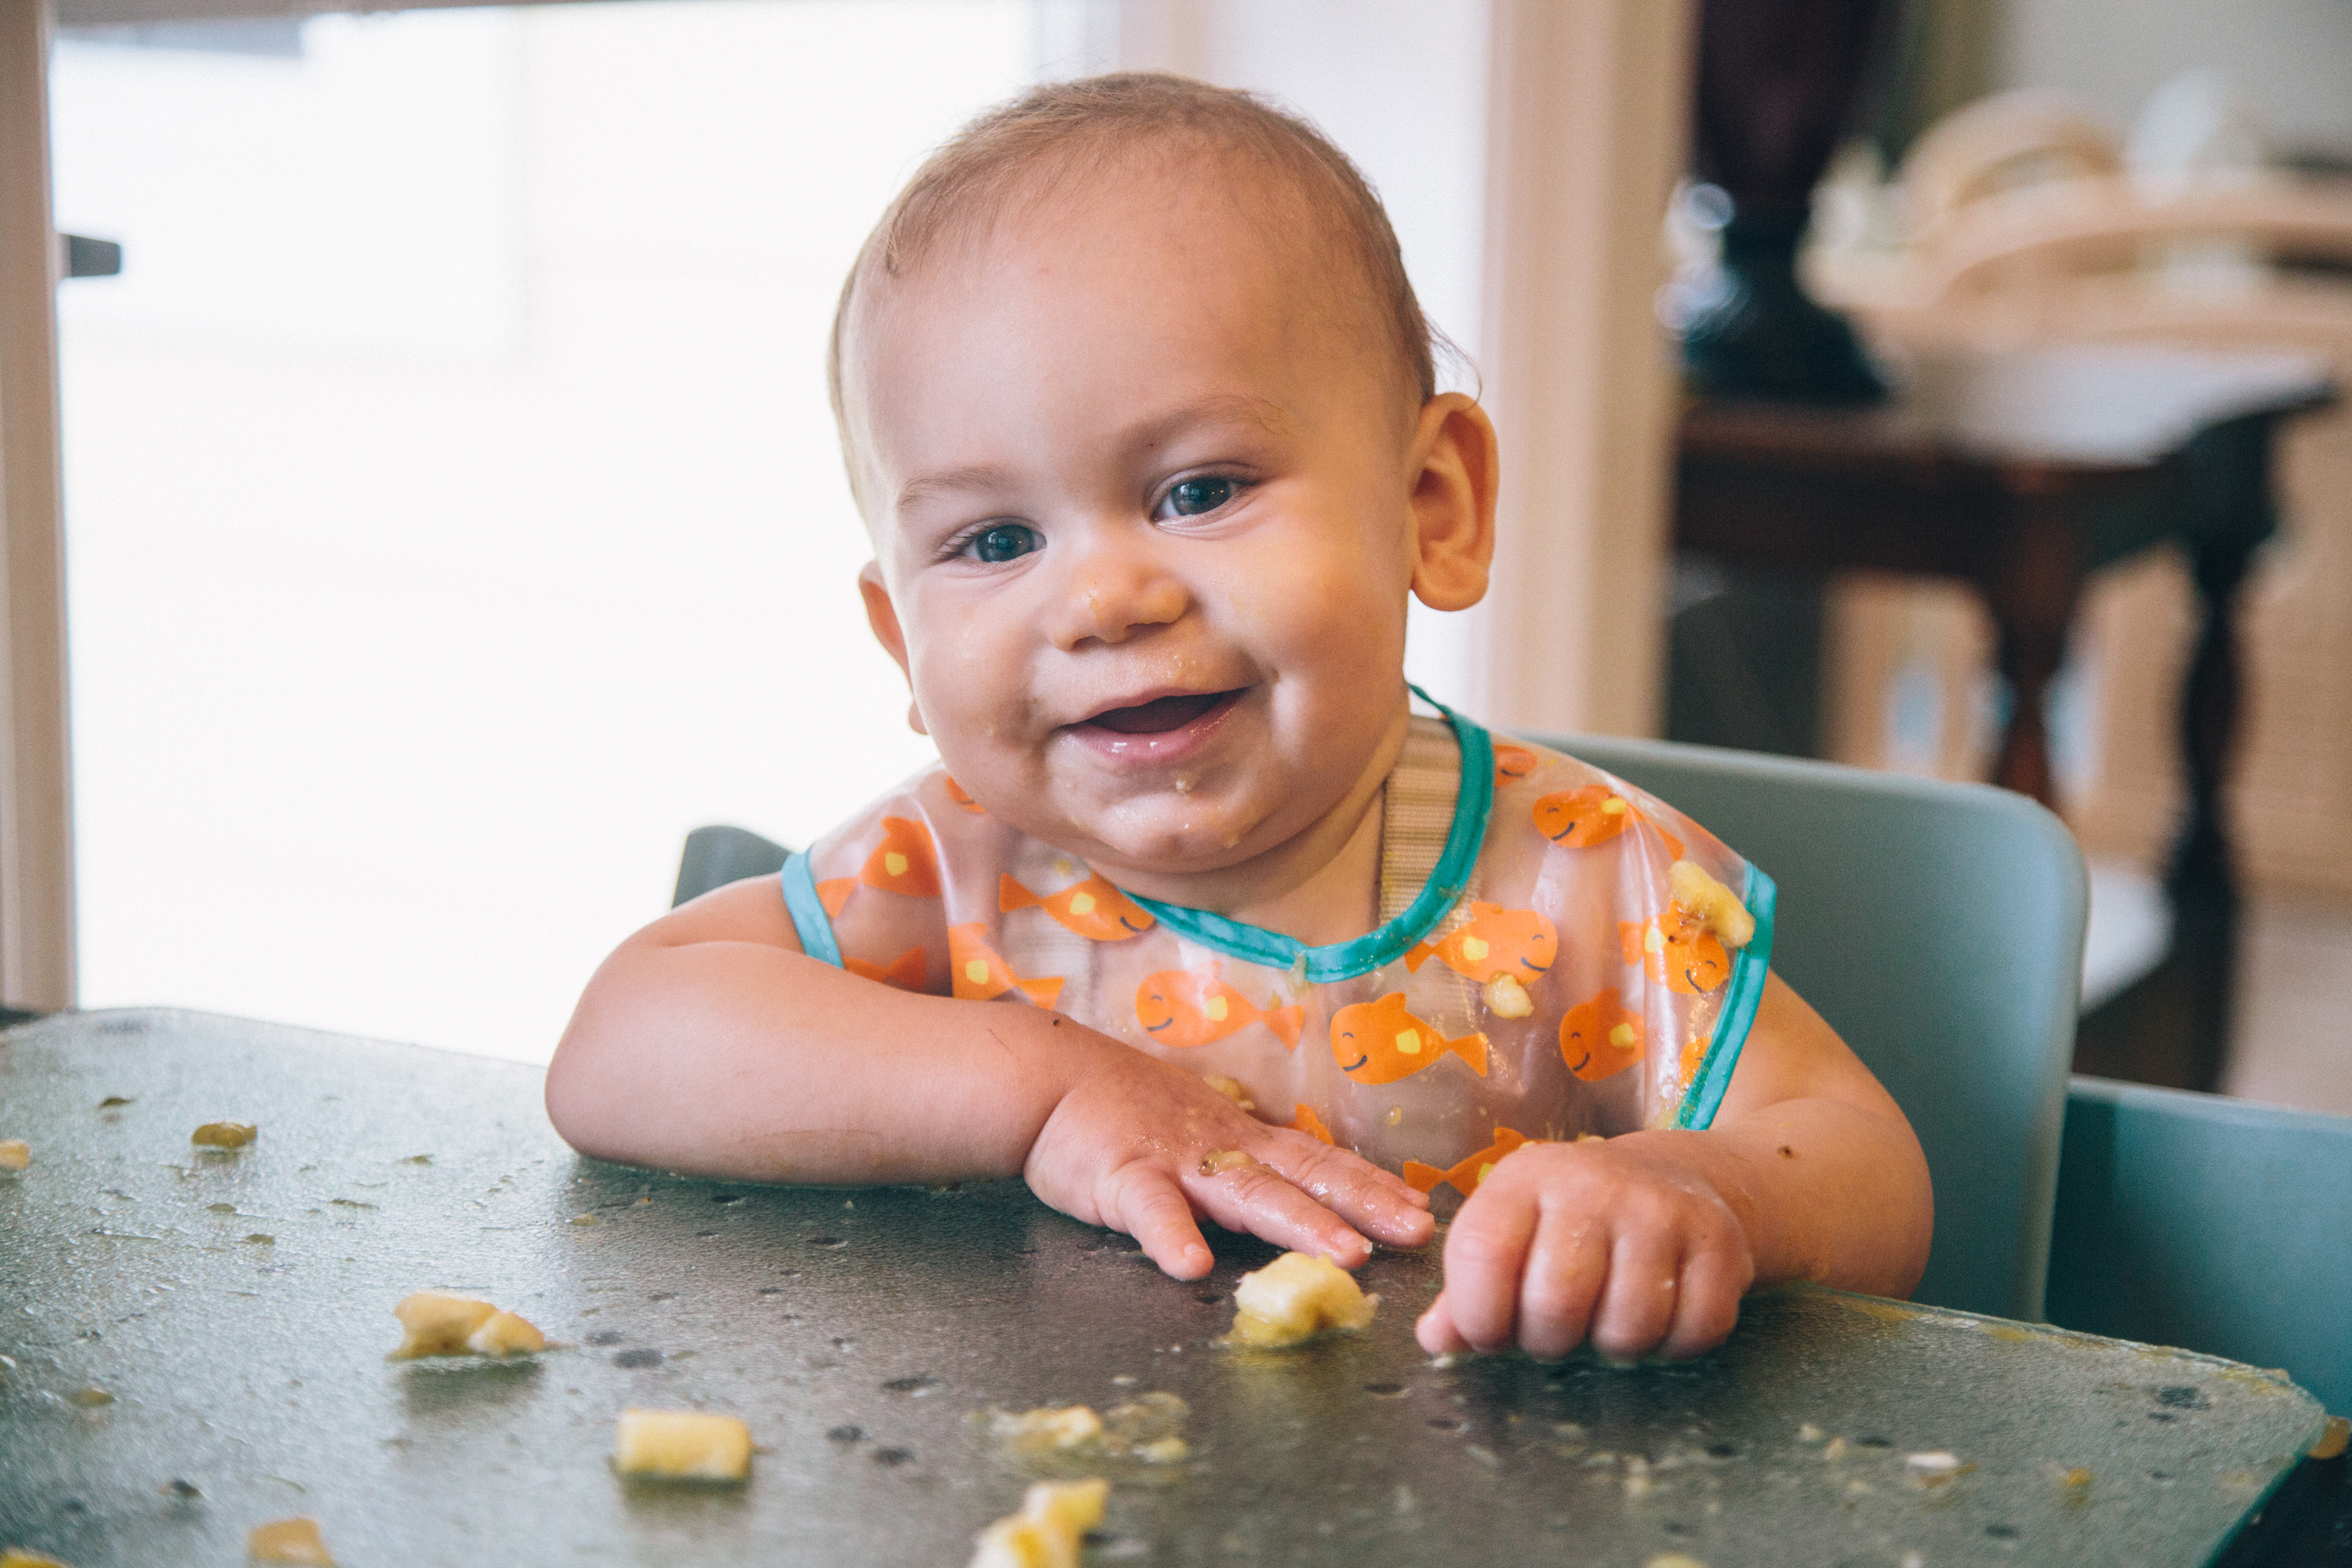 Diana-Milena-Sunkissed-Blonde-Eating-Baby-Led-Weaning-Food-